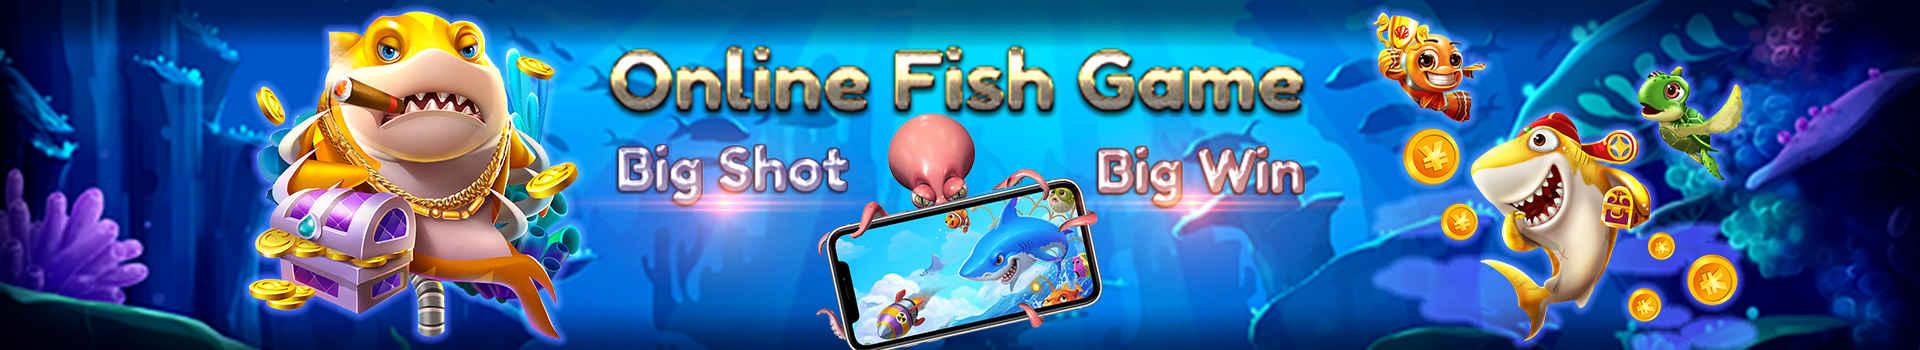 Fish table online,online fish shooting game real money usa,fish table gambling game online, Ocean King 2 Thunder Dragon , ocean king 3 dragon mania,golden dragon online fish table , king of treasures , phoenix realm , tiger phoenix